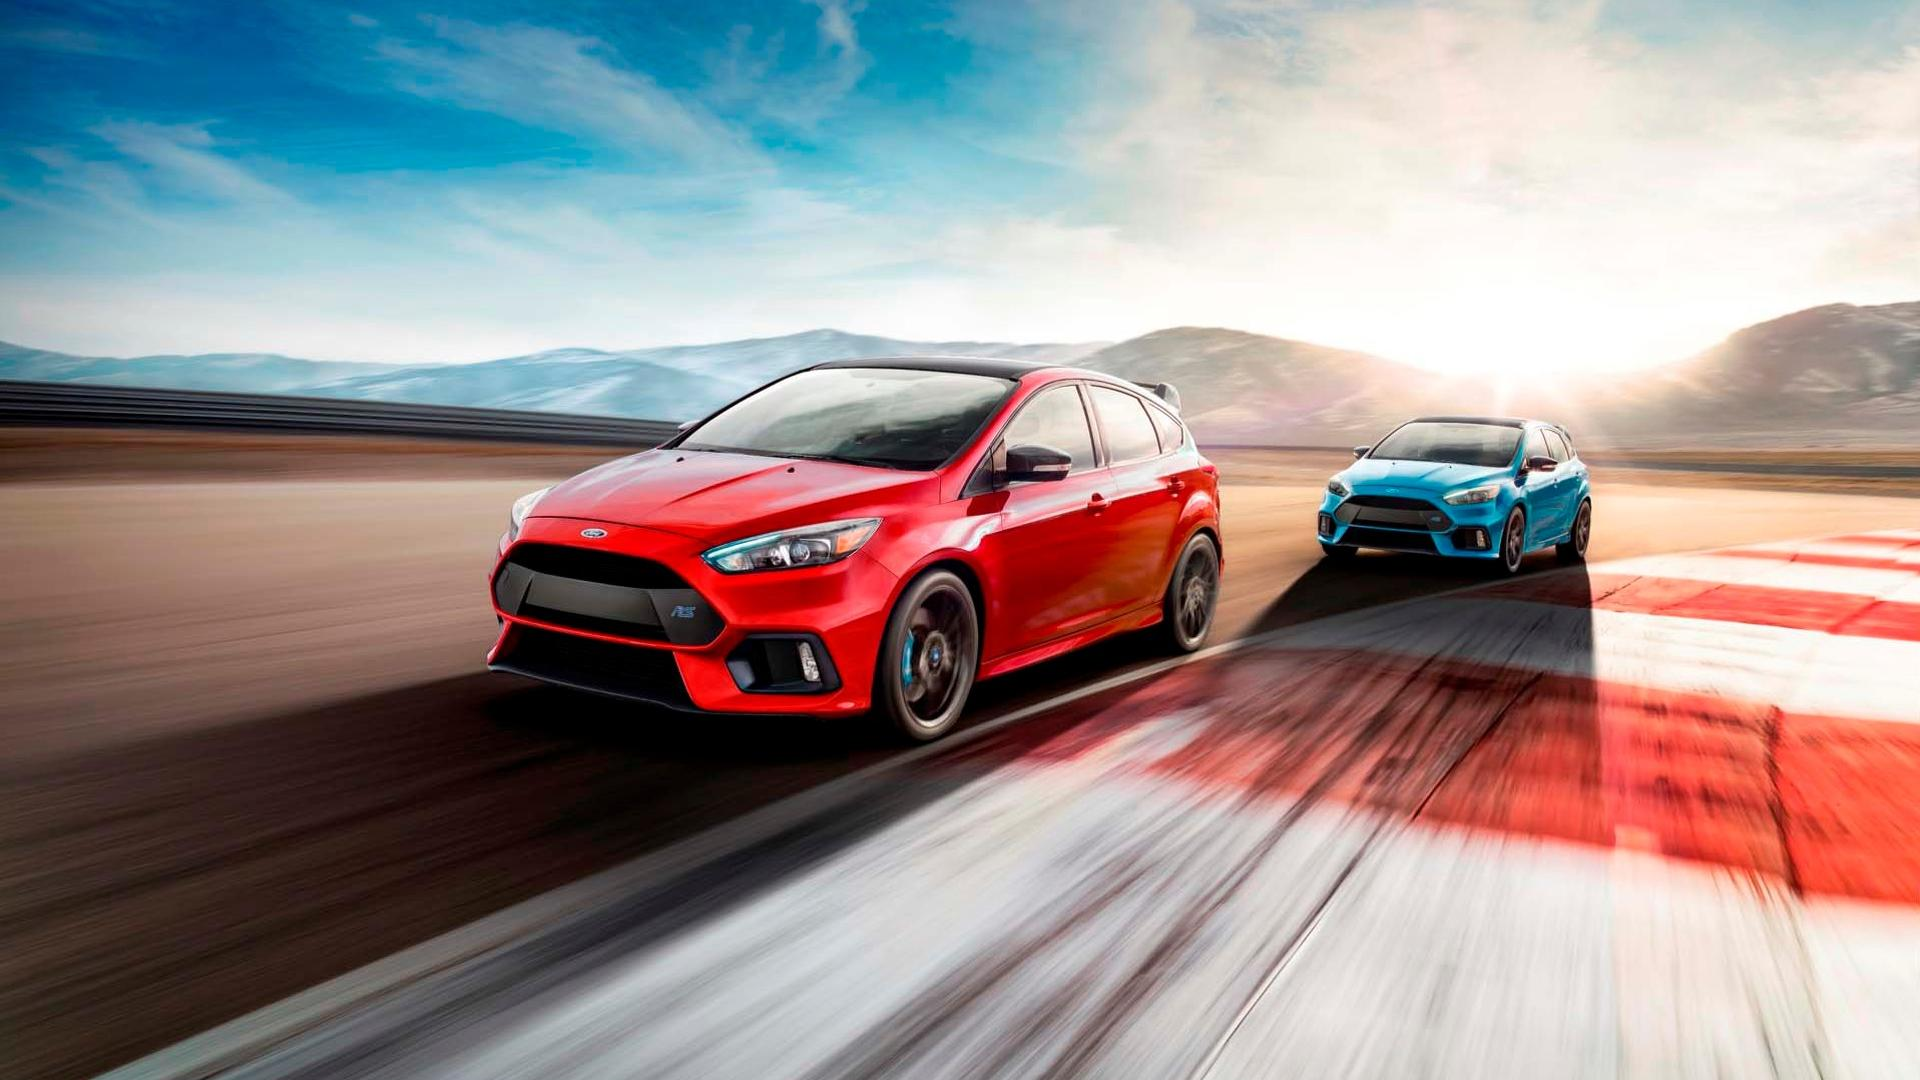 2018-ford-focus-rs-limited-edition_2.jpg